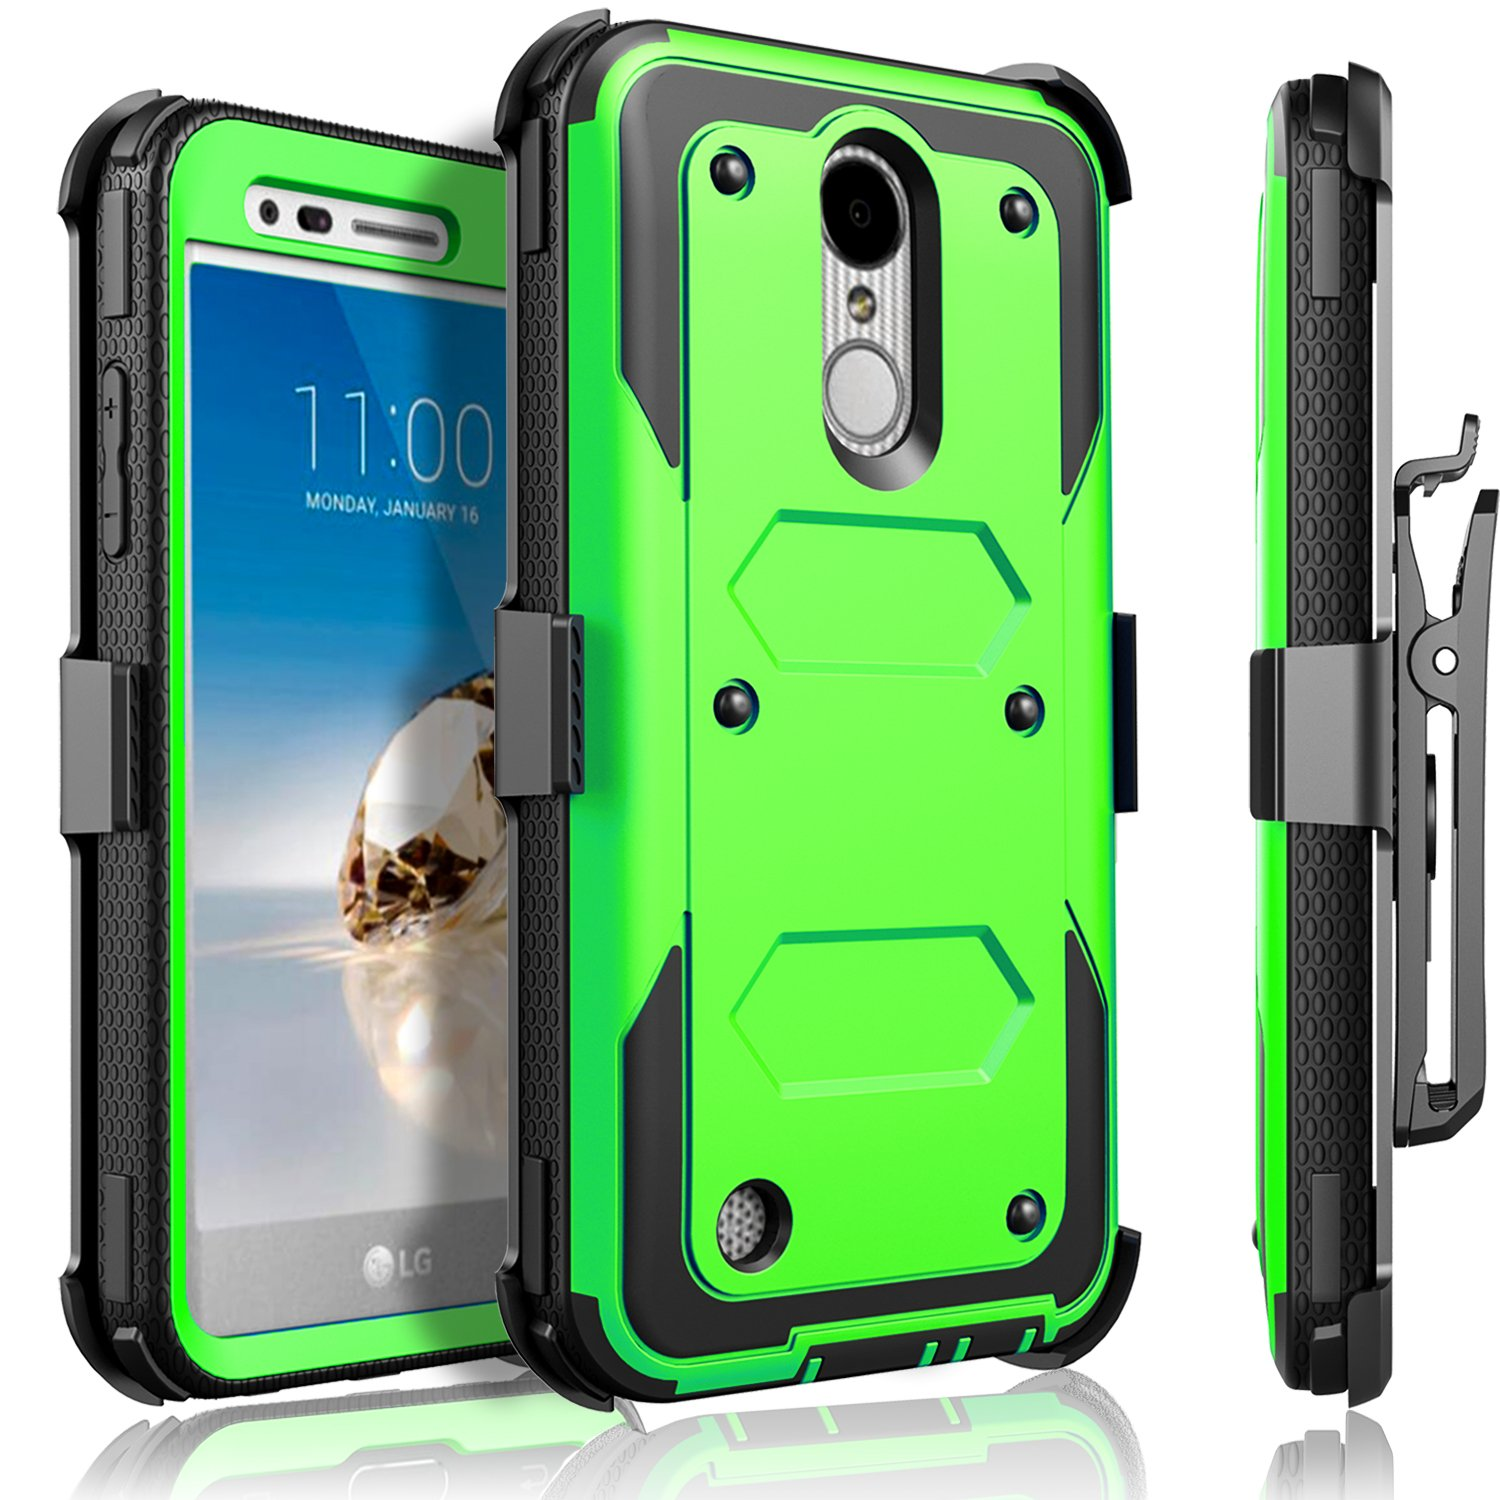 LG Aristo Case, LG Phoenix 3 Case, LG K8 2017 Case, LG Fortune Case, Circlemalls [SUPER GUARD]Dual Layer Protection With [Built-in Screen Protector] Holster Belt Clip + Touch Screen Pen[Green]